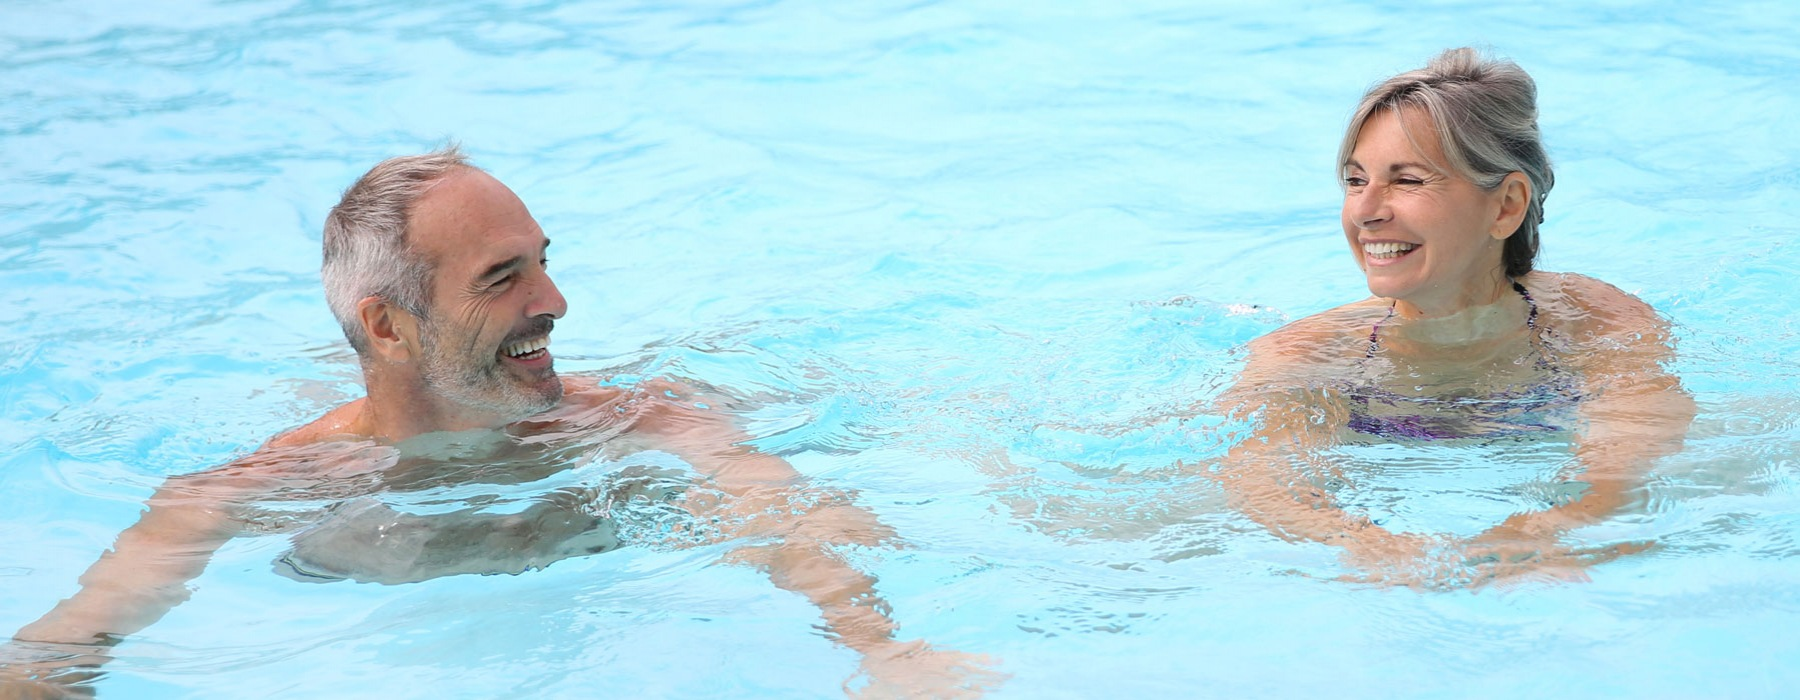 Couple swimming in a pool